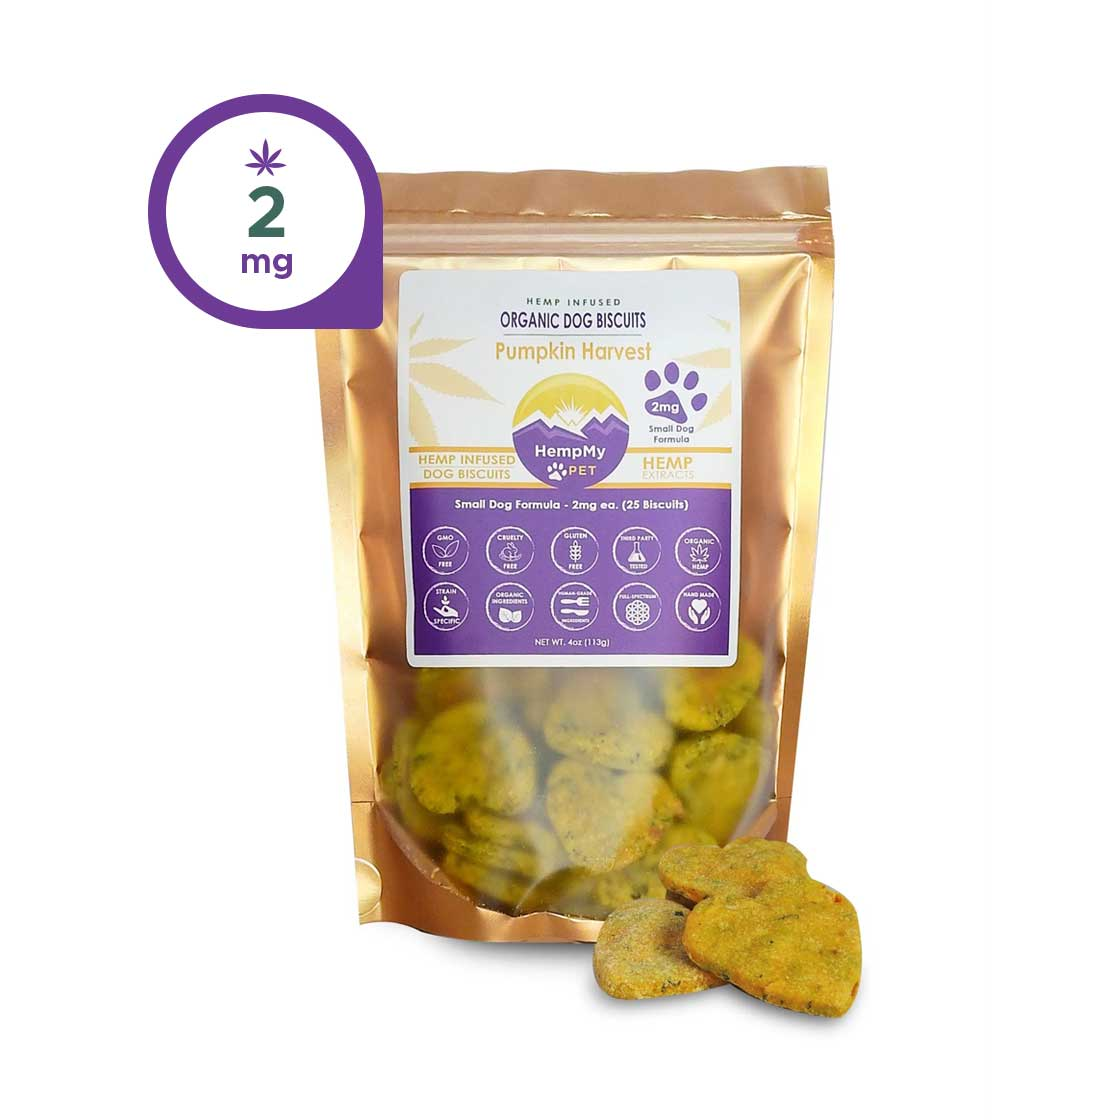 Hemp Dog Treats - 2mg CBD ea, Organic, Small Dog, Pumpkin